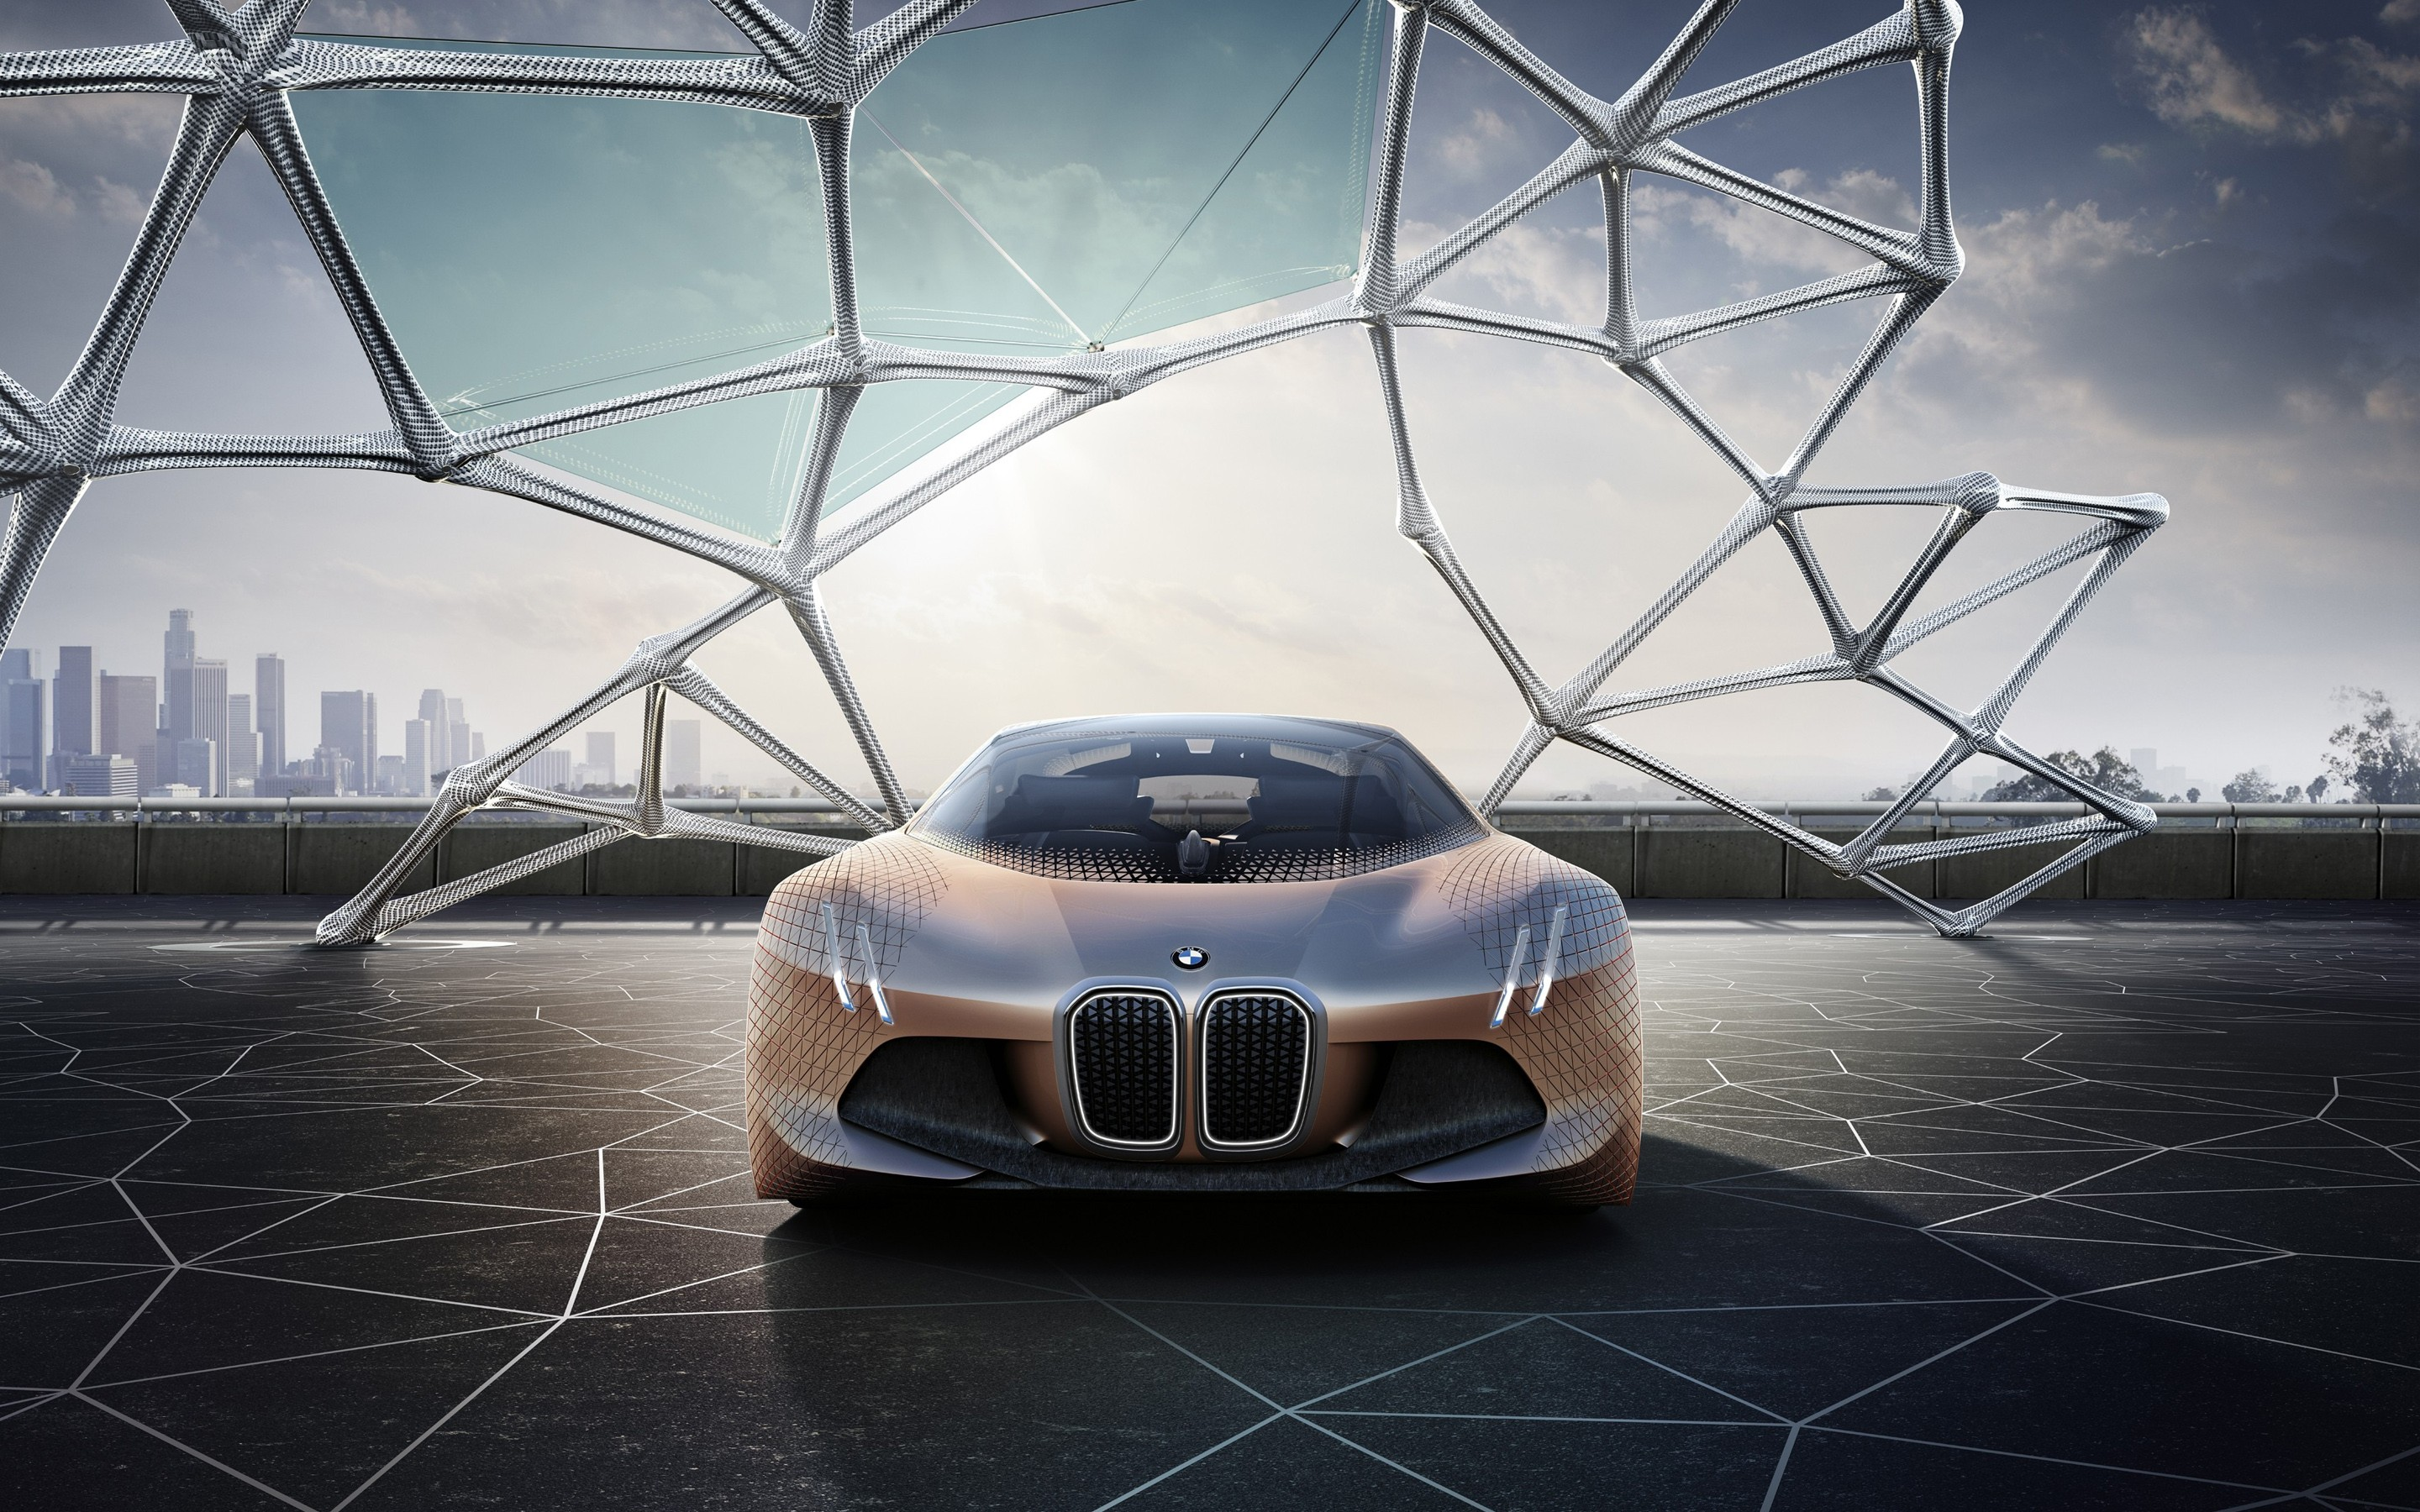 Wallpaper Bmw Vision Next Hd Wallpaper Concept Electric Car